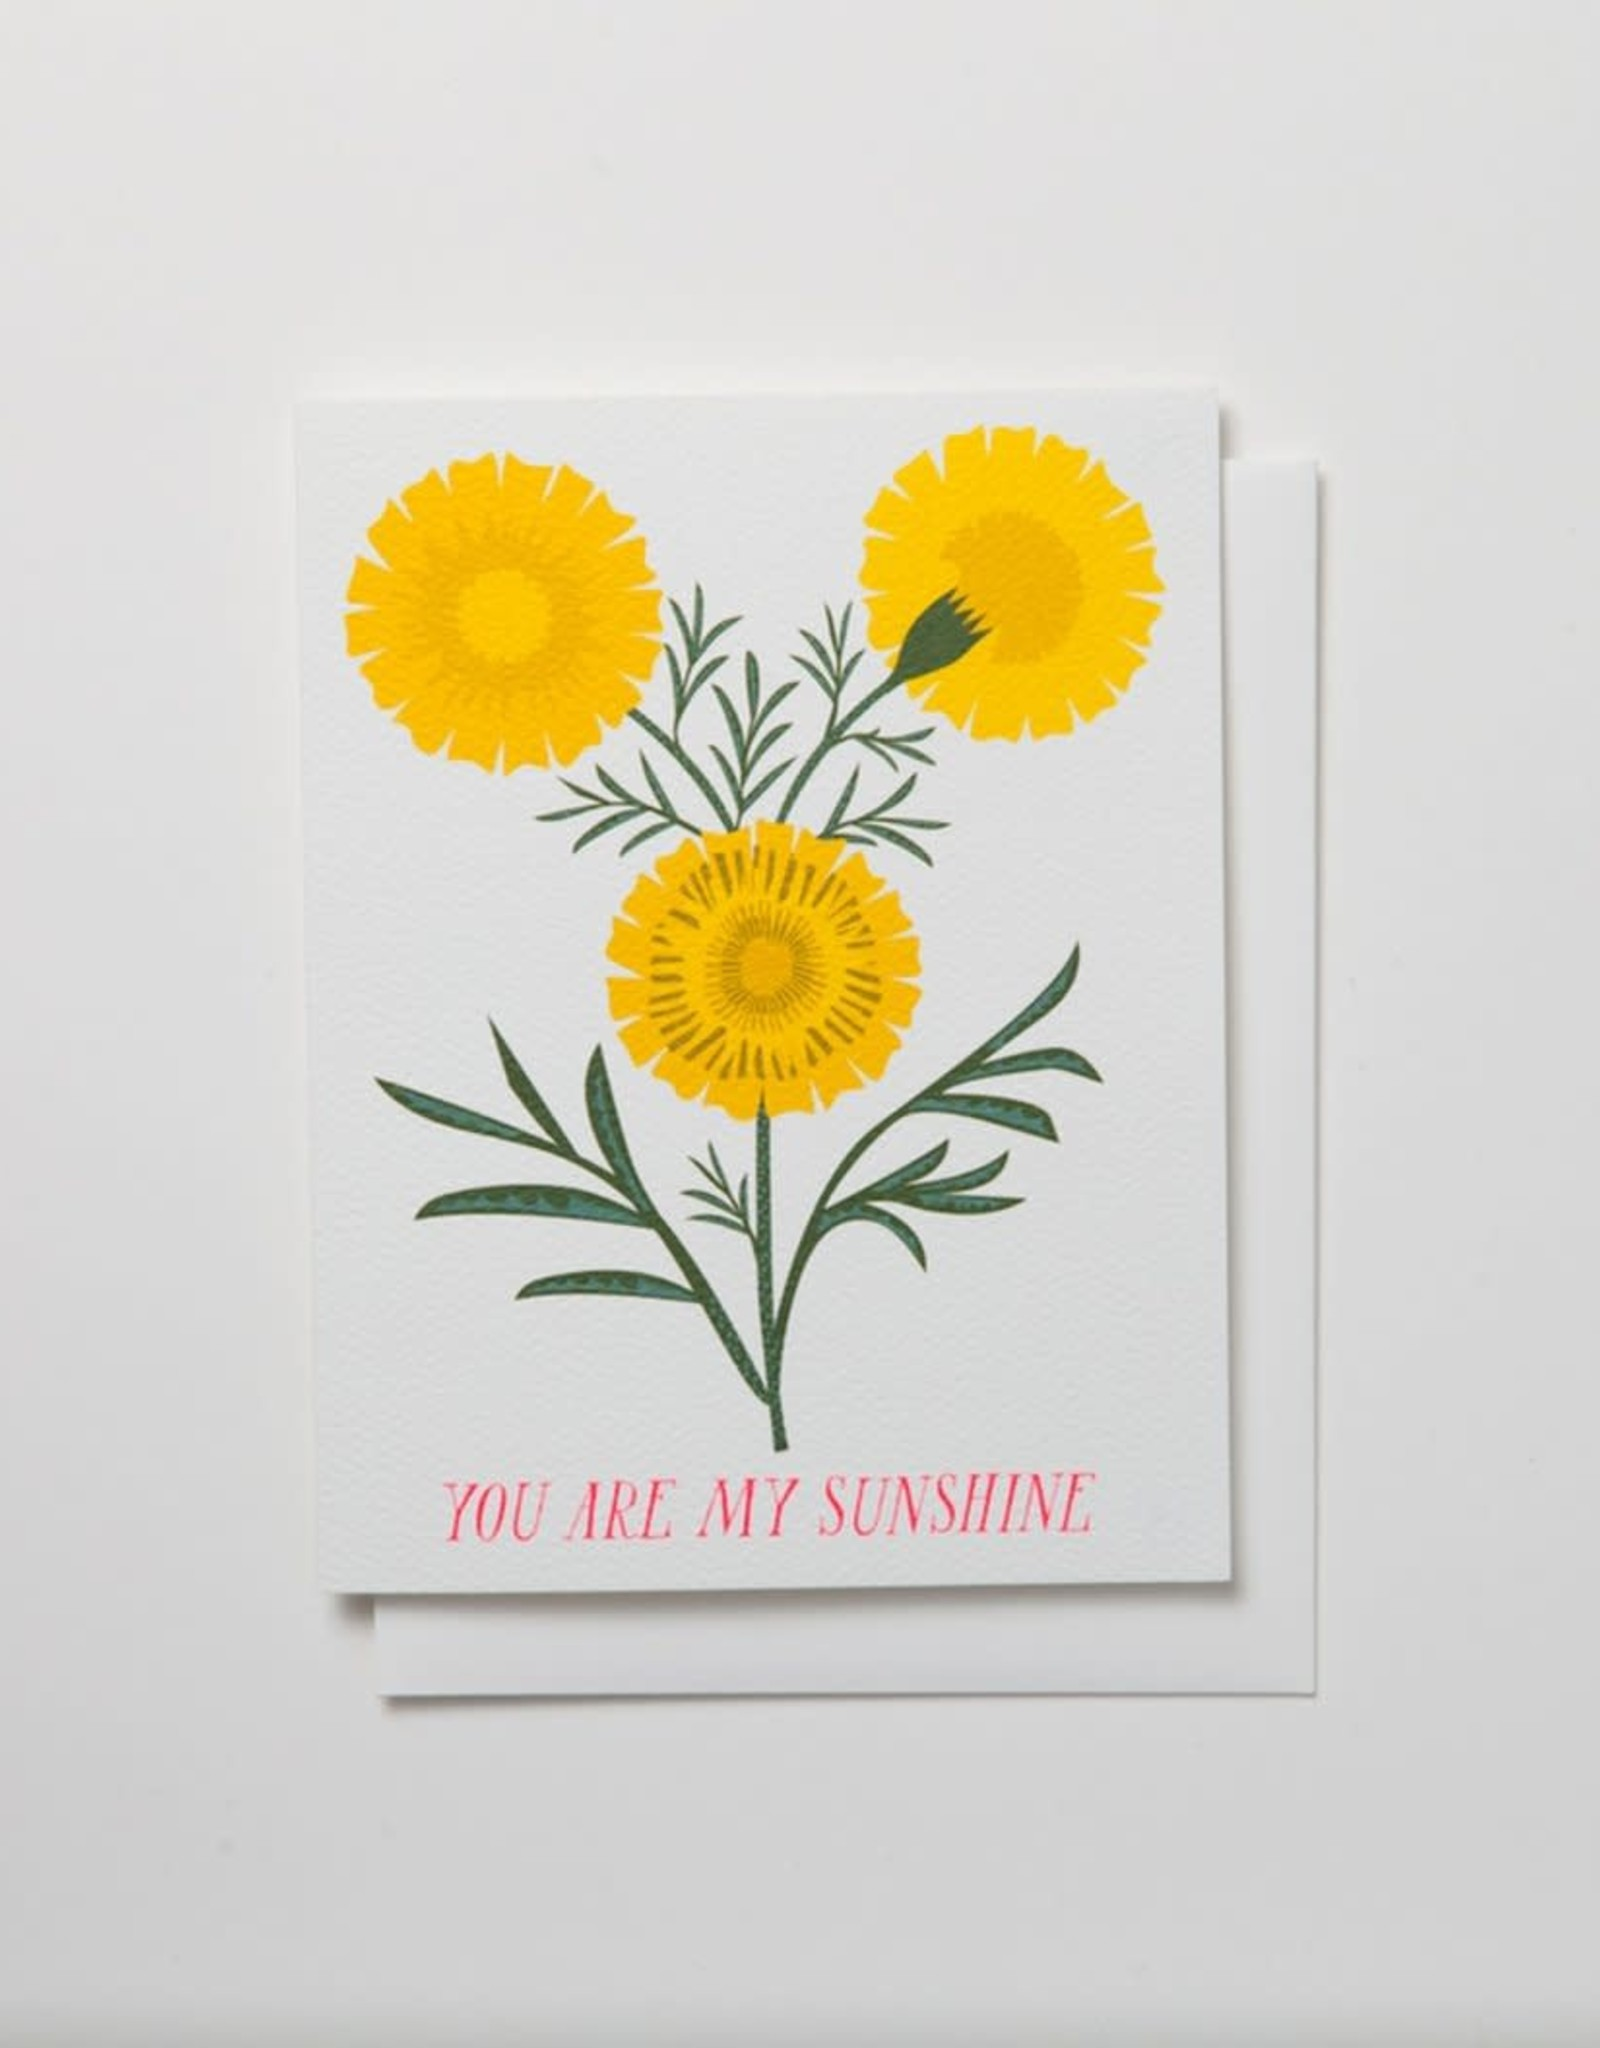 Banquet Atelier & Workshop You Are My Sunshine - Note Card